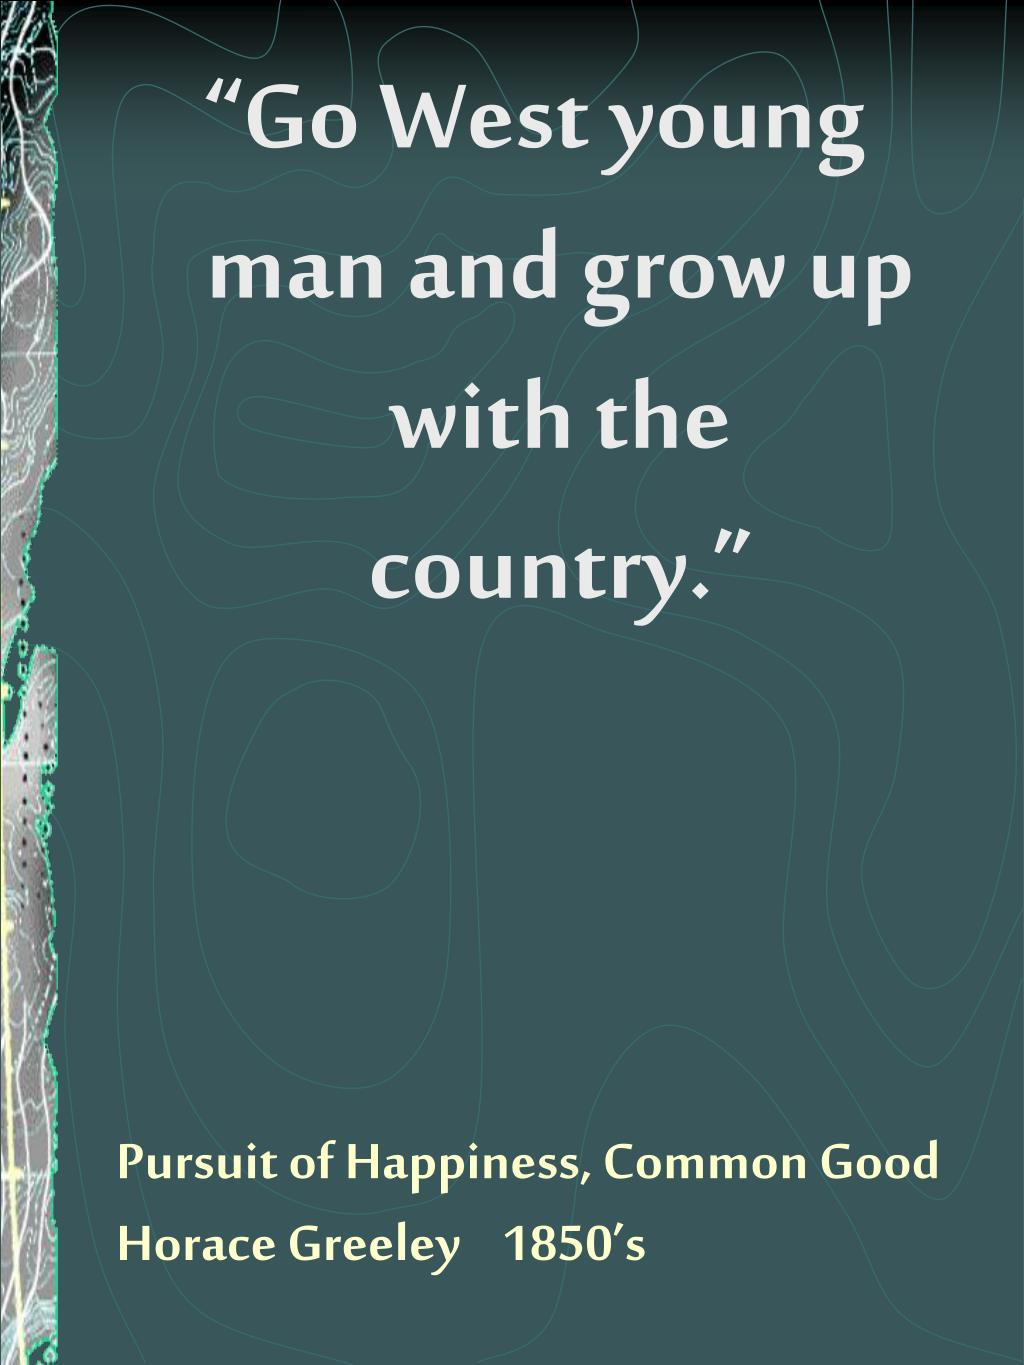 Pursuit of Happiness, Common Good